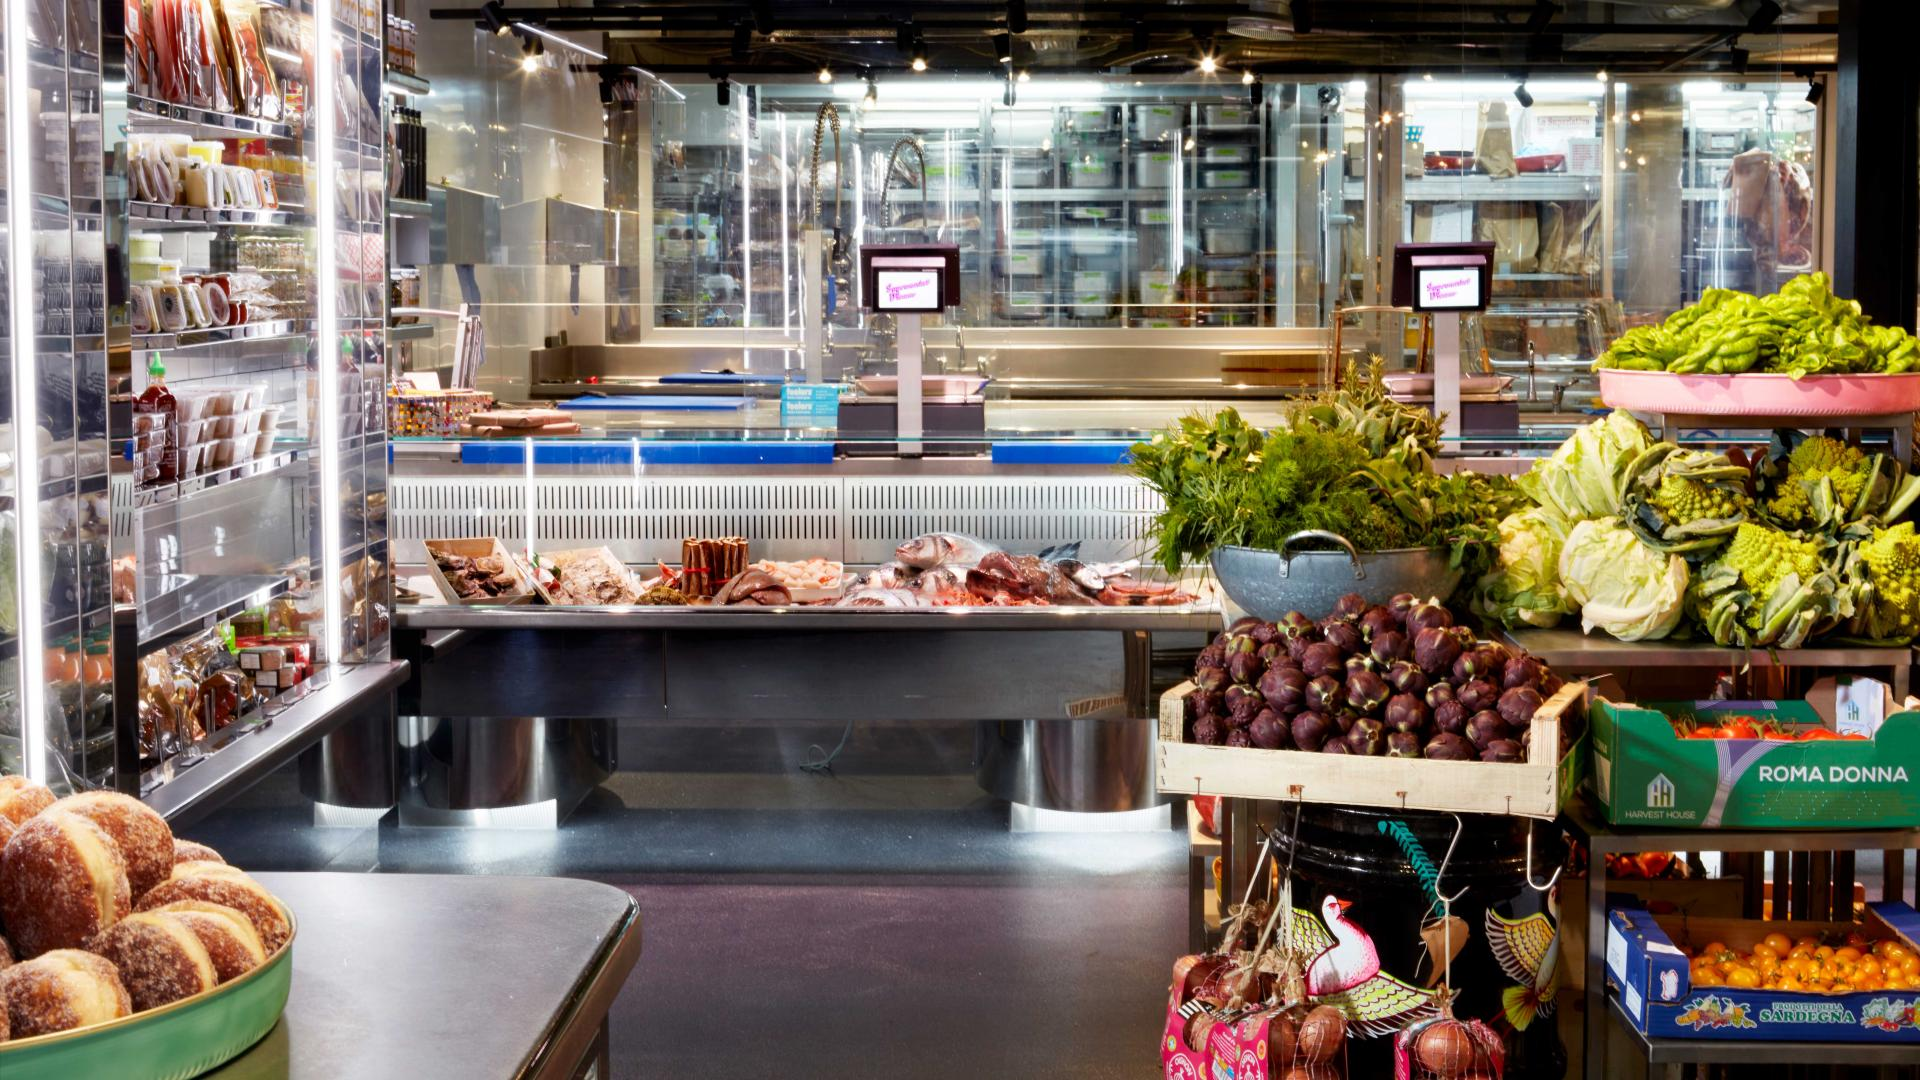 Best butchers London: the butchery counter at Notting Hill Fish + Meat